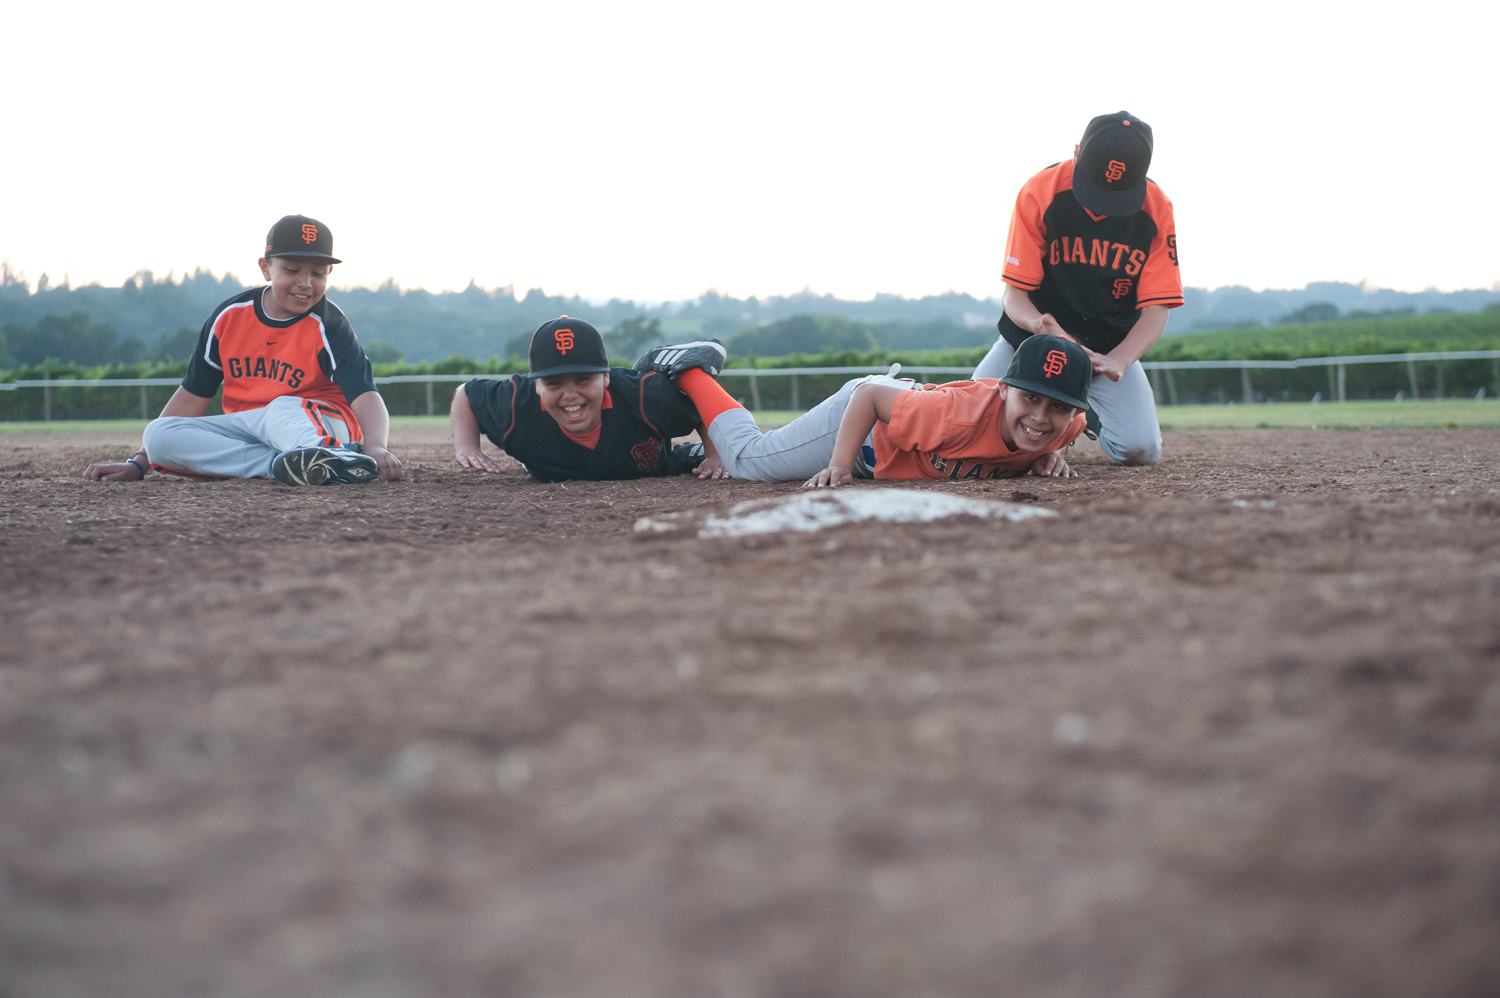 Boys_playing_on_Balletto's_field_of_dreams_candid.png